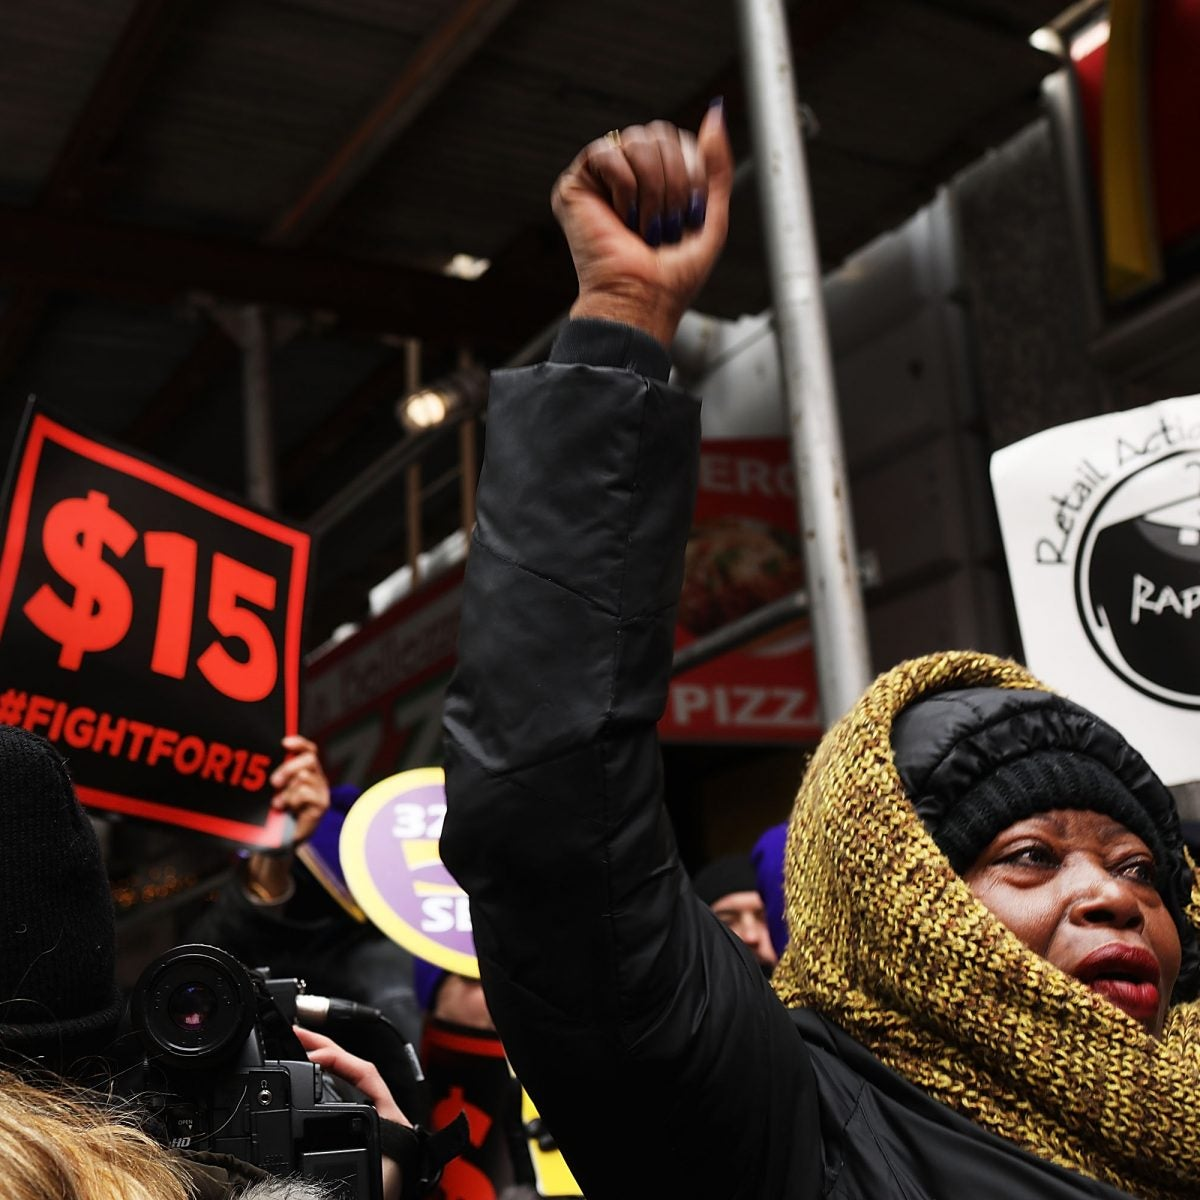 McDonald's Workers on Strike Today For Higher Wages Across 15 Cities